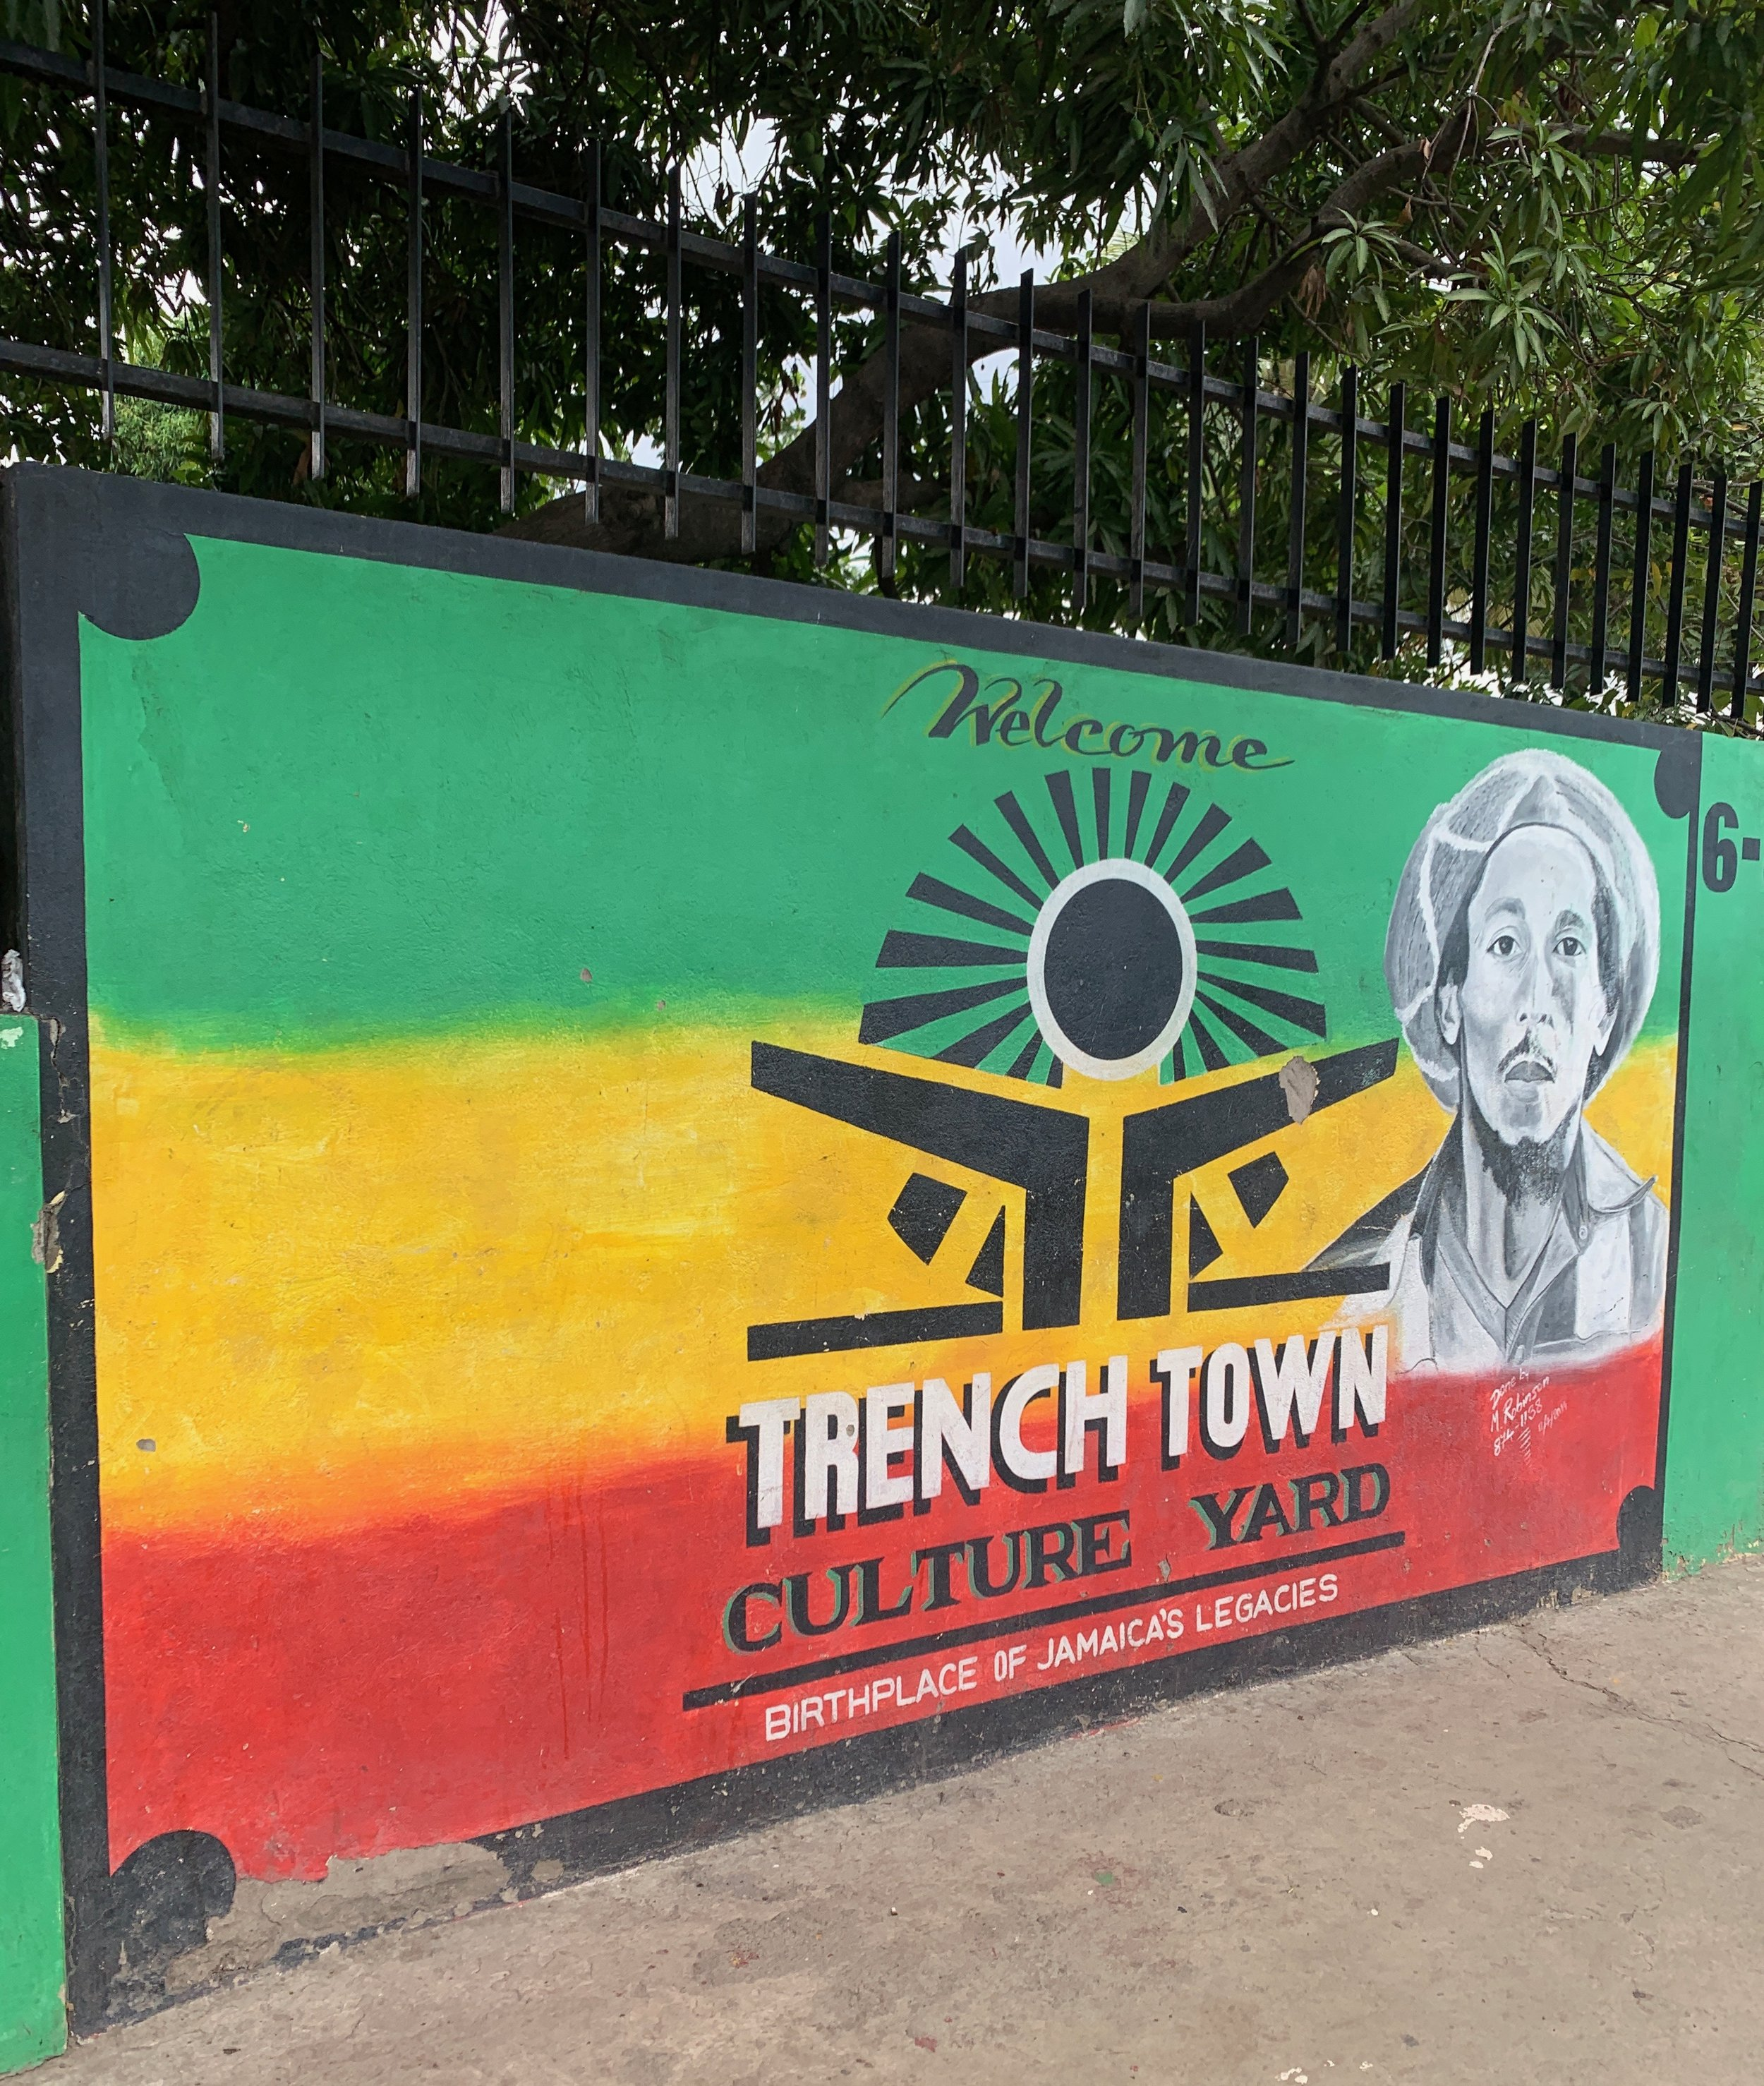 This was also my first visit to Trench Town, a gritty inner-city 'hood where many of Jamaica's talents - Bob Marley among them - got their start